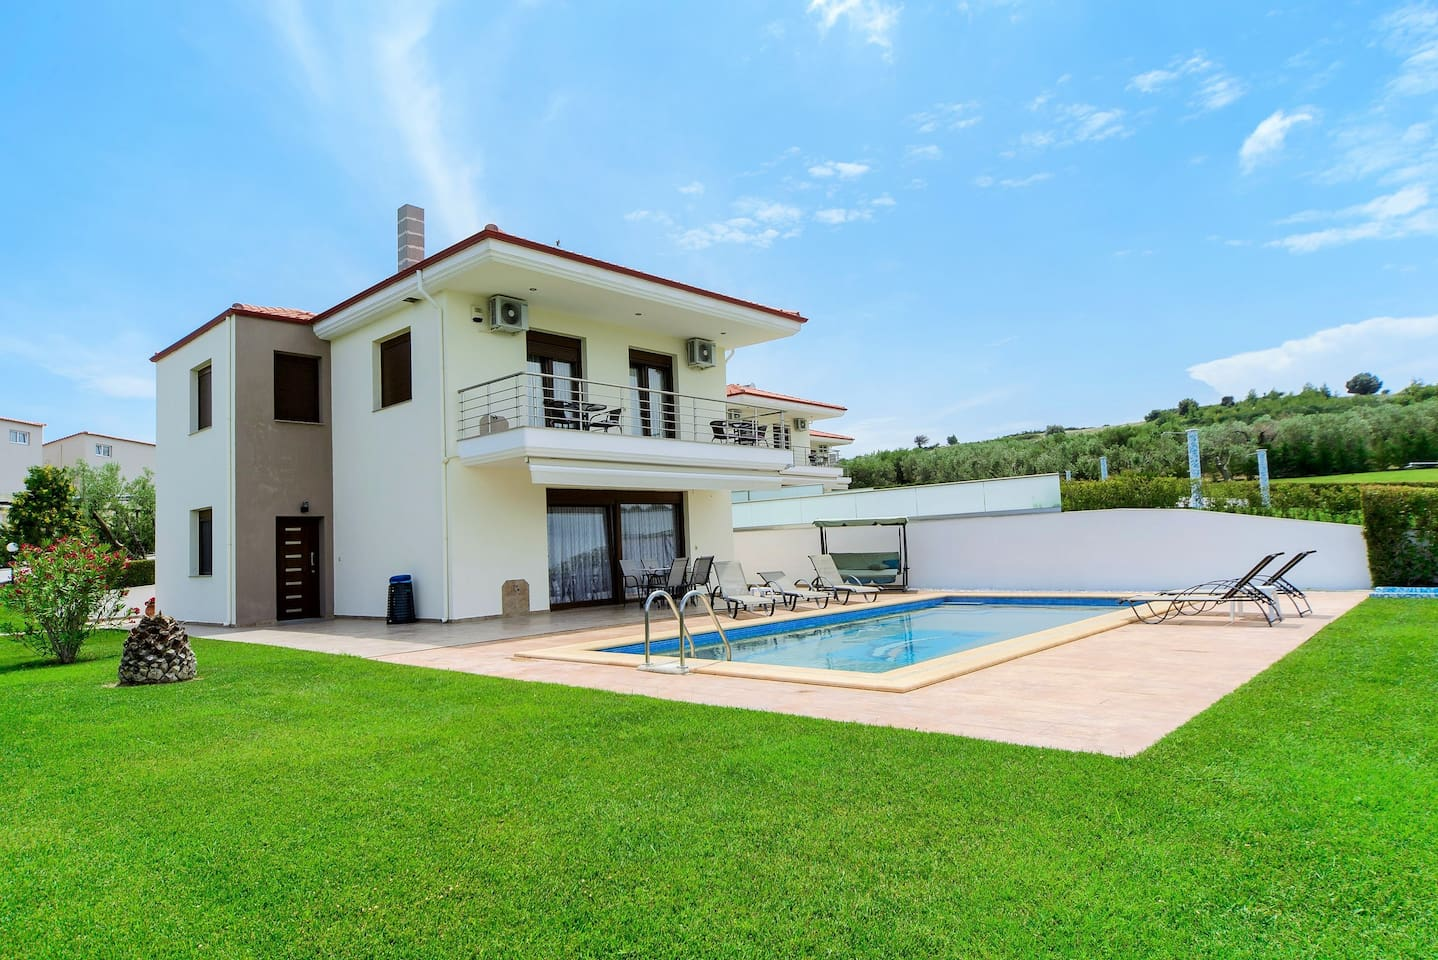 Elegant Villa - 3 bedroom (170 sq.m.) is the ideal destination for those seeking to combine luxury, comfort and privacy,all in one ultimate experience.Enjoy the sea breeze and the golden sun slinking away from your window.